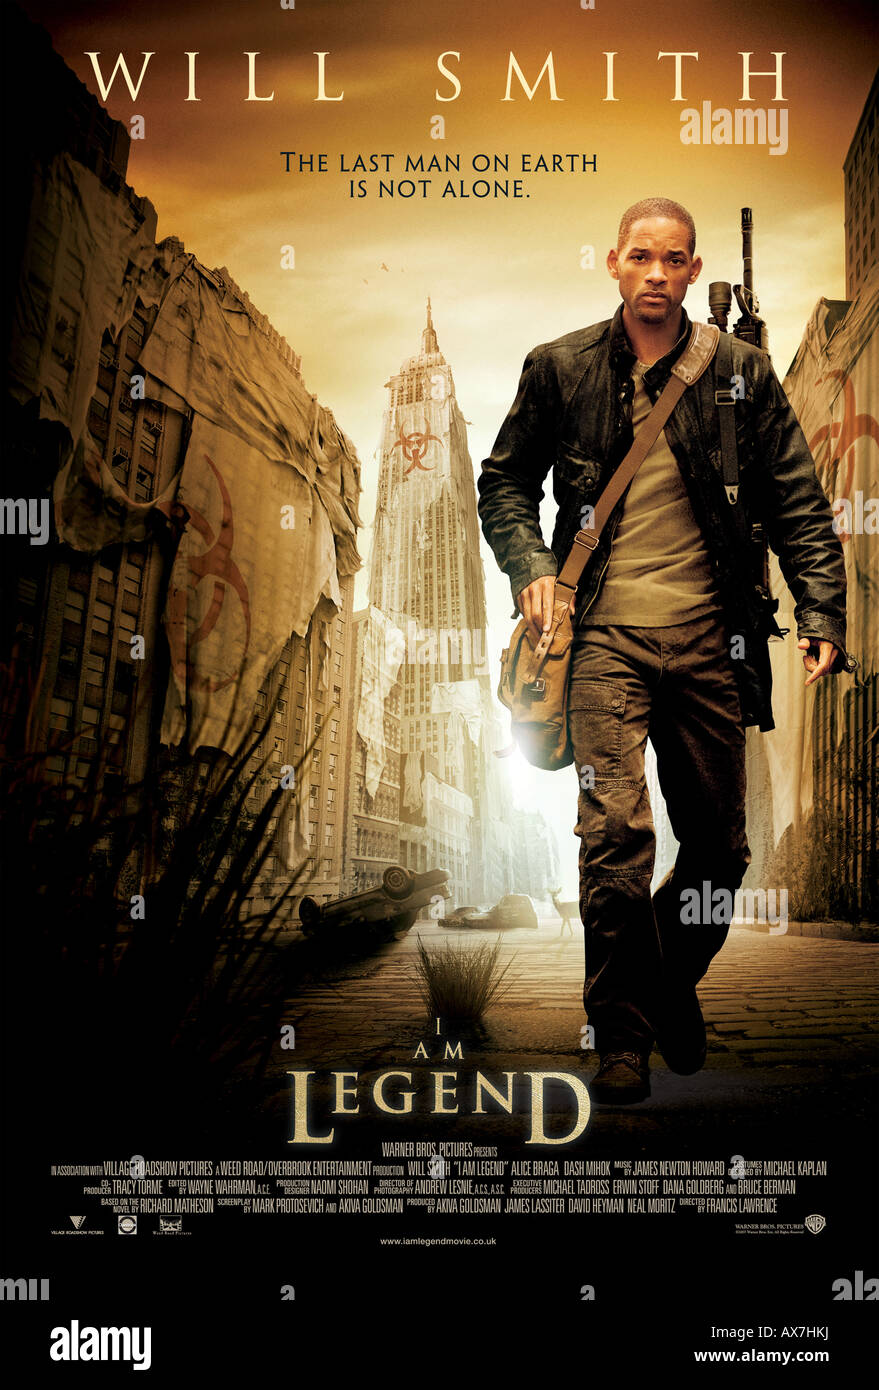 I Am Legend Poster For 2007 Warner Bros Film With Will